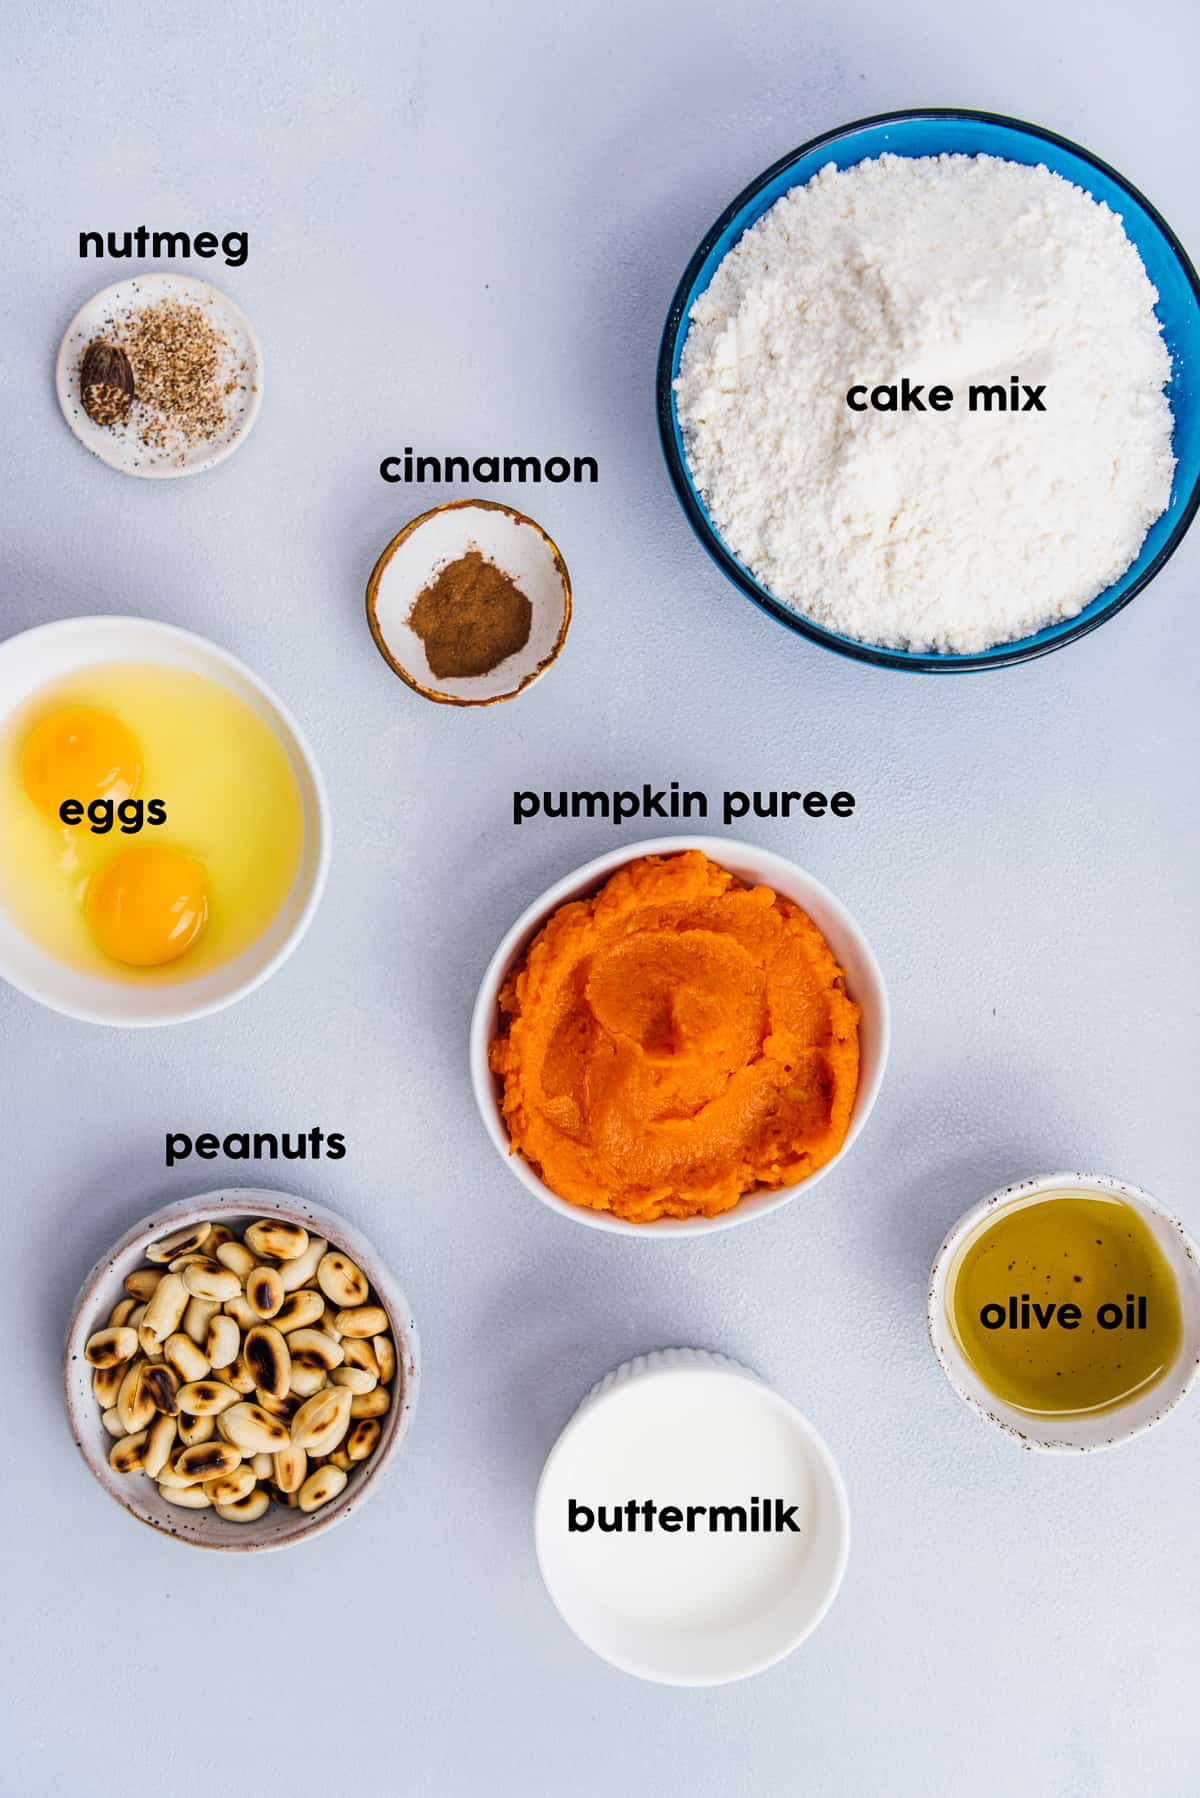 Cake mix, pumpkin puree, eggs, nutmeg, cinnamon, panuts, buttermilk and olive oil all in separate bowls on a grey background.